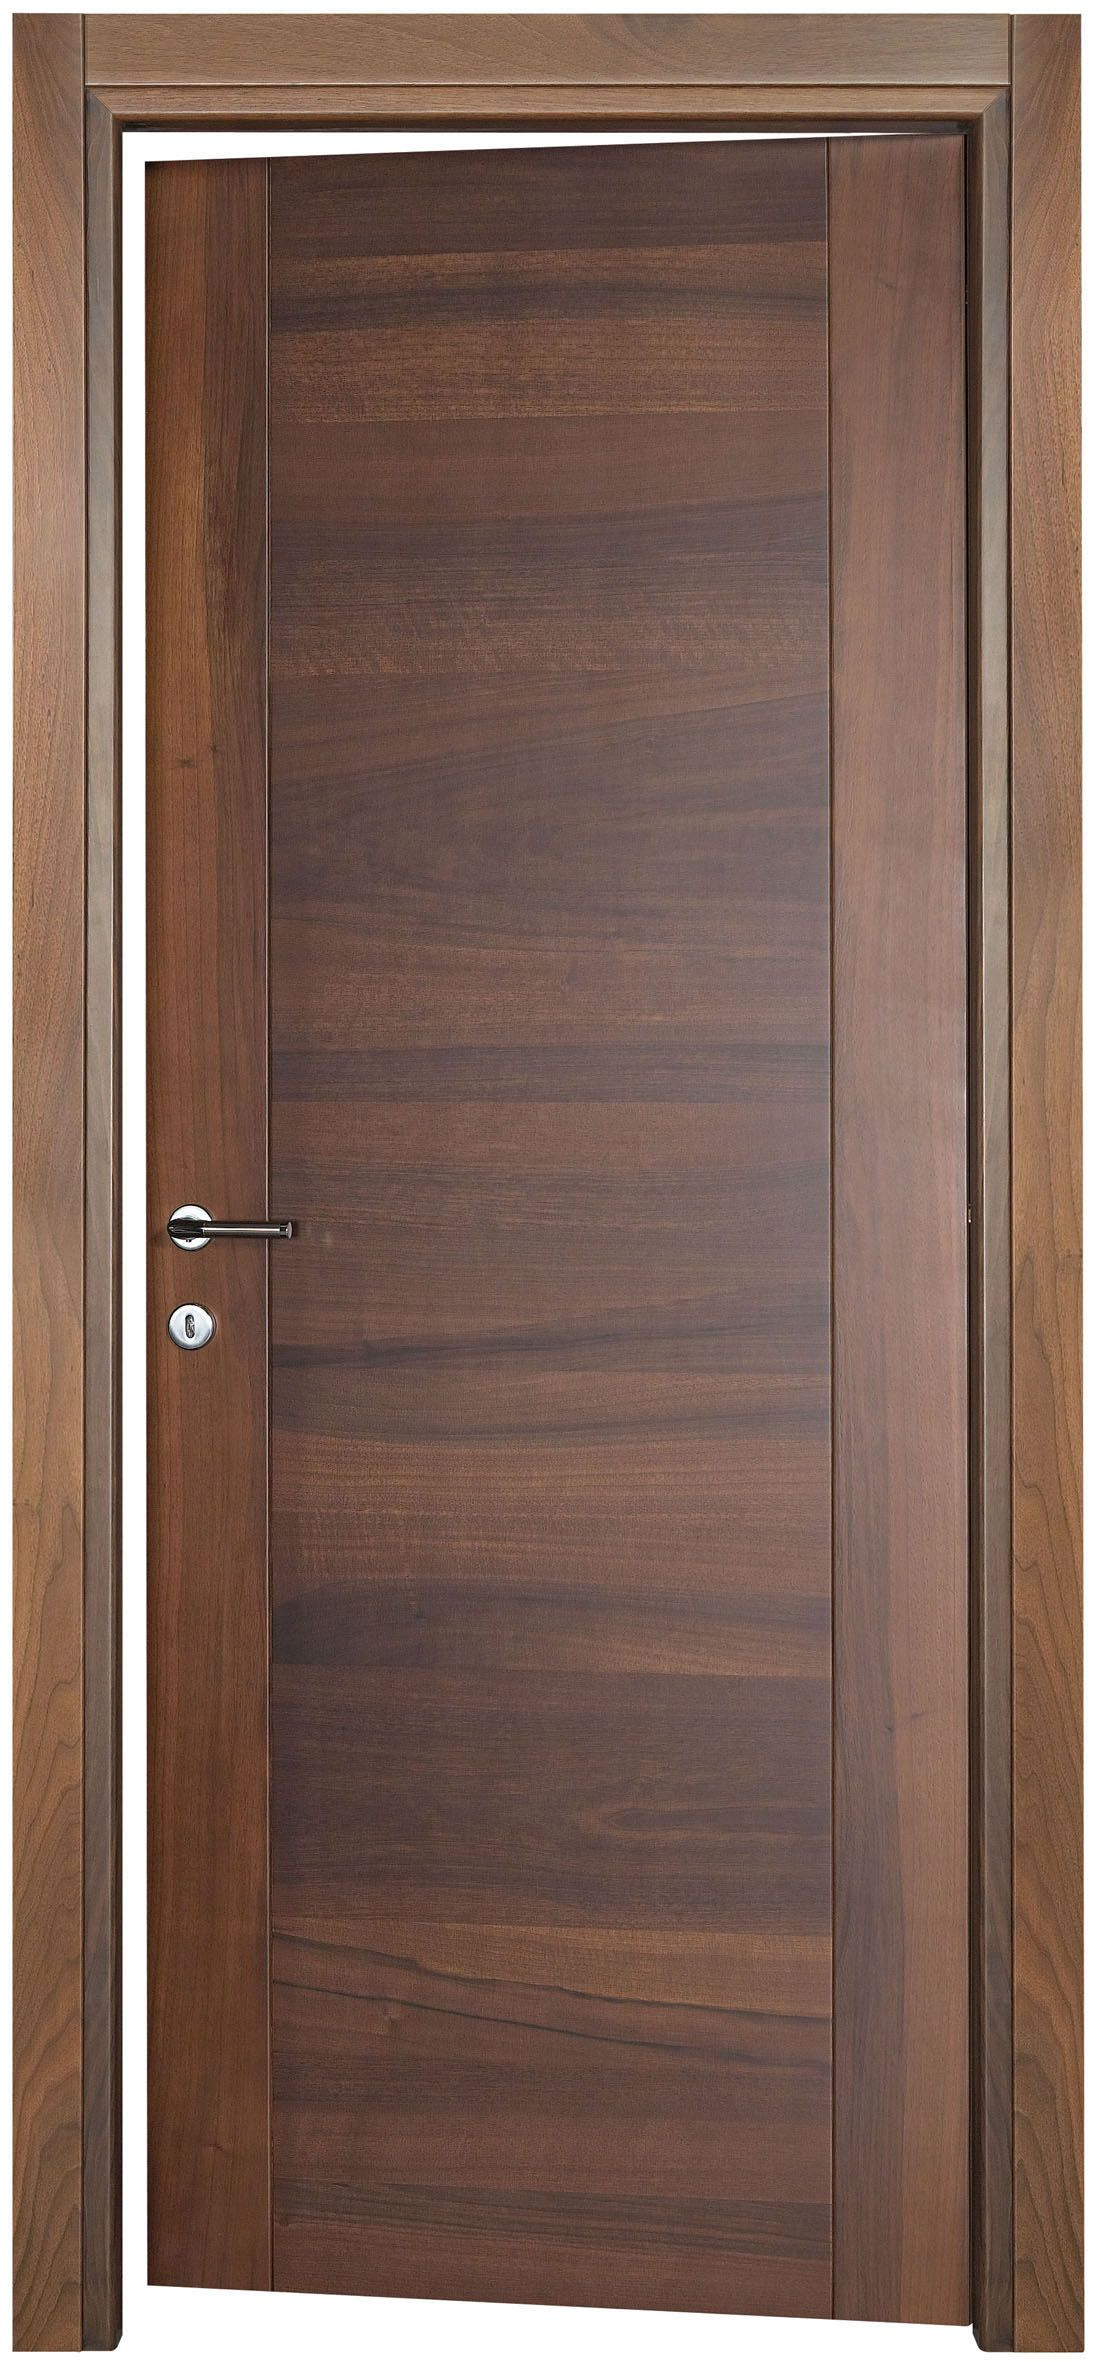 Plywood Door Designs For Rooms Interior Doors By Pail Door Door Design Interior